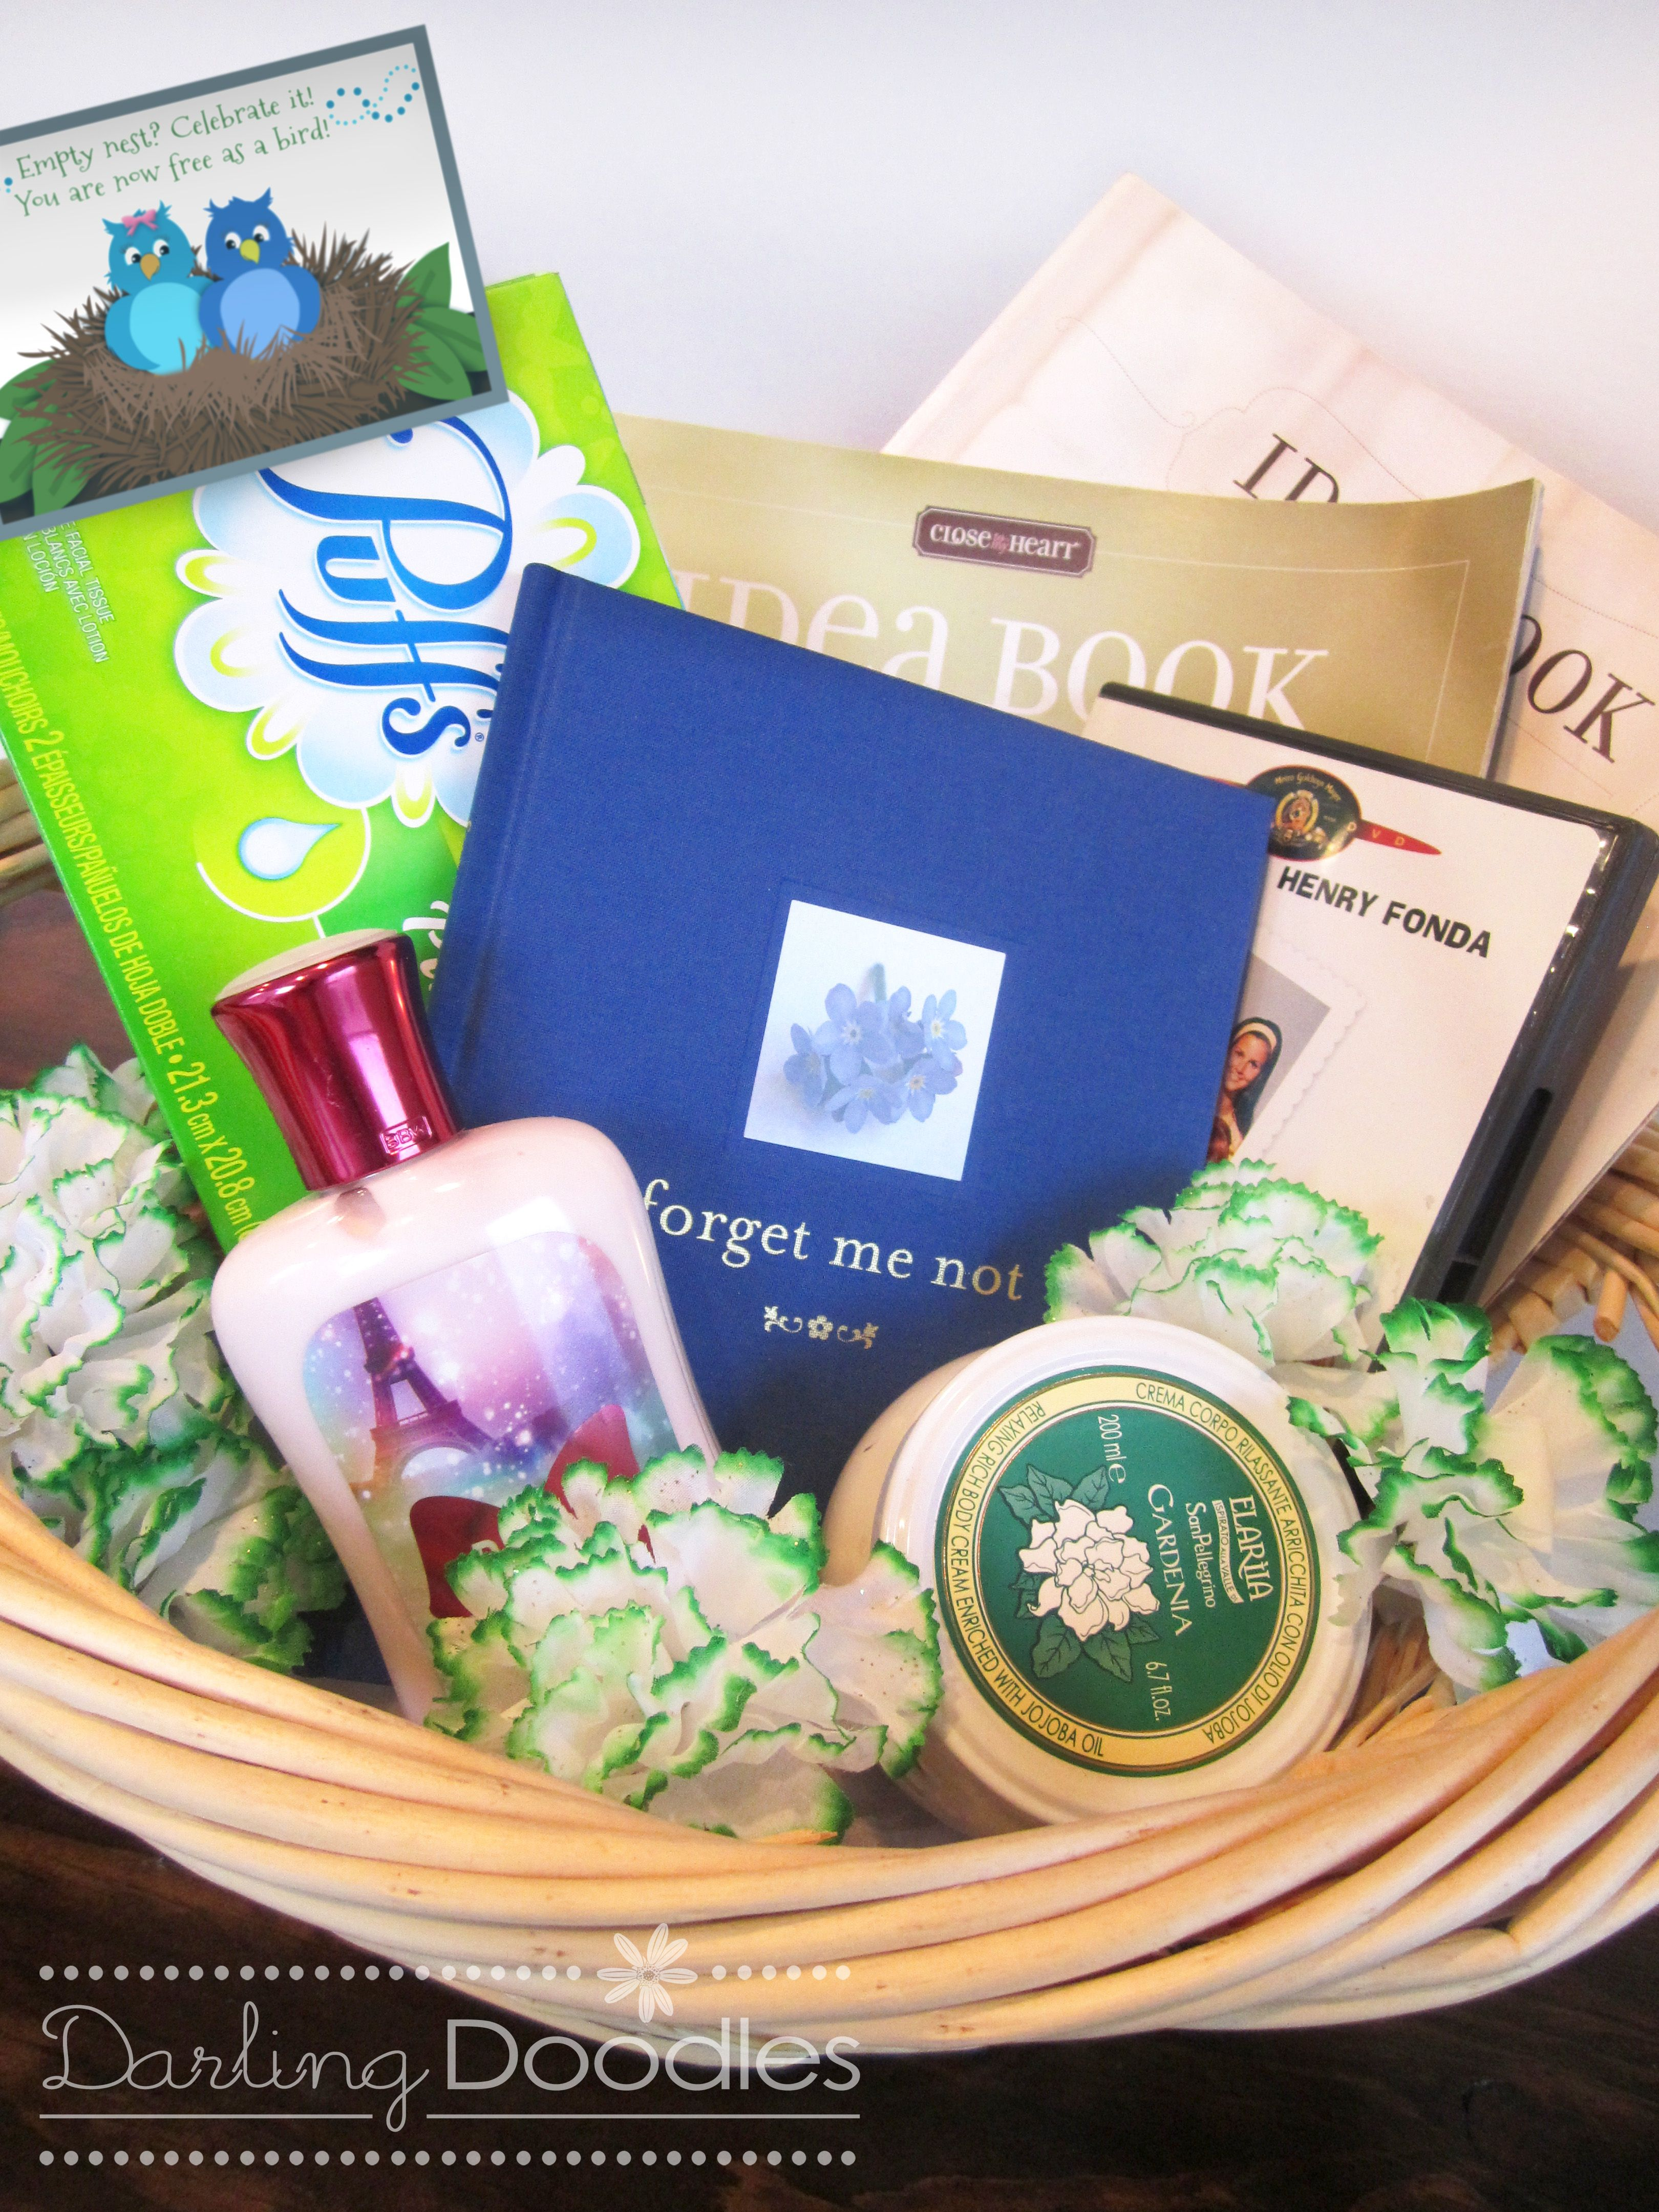 For parents from sondaughter gift basket for coping with empty for parents from sondaughter gift basket for coping with empty nest syndrome good for when you move out or for those of you that stay home until your negle Image collections